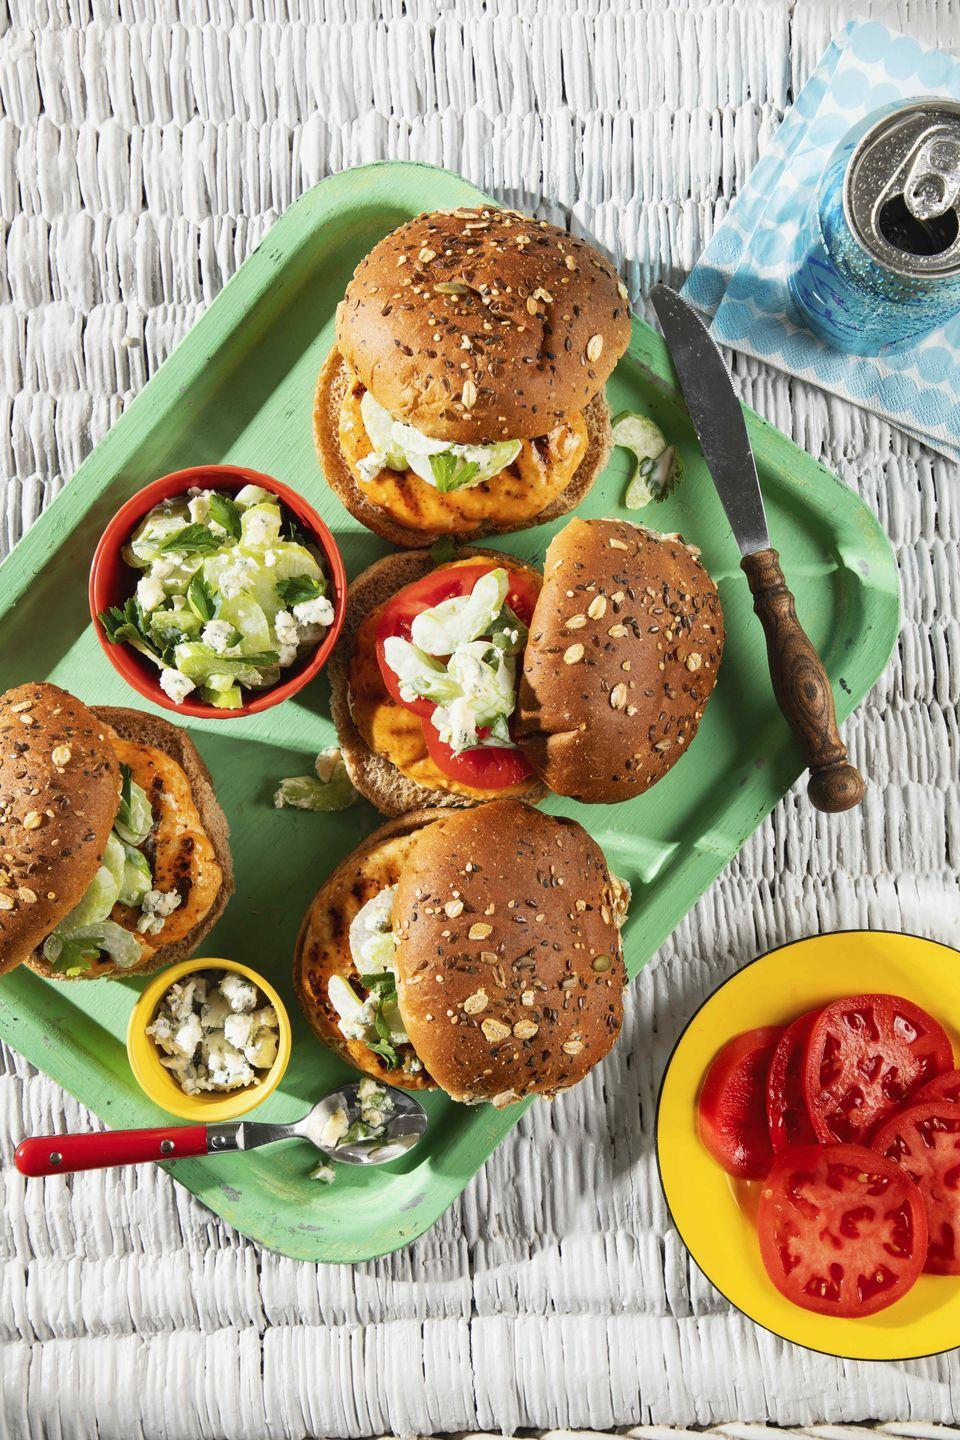 """<p>Cooking for folks that are avoiding red meat? This Buffalo-sauce-flavored burger is a beef-free crowd-pleaser.</p><p><strong><a href=""""https://www.countryliving.com/food-drinks/a36320250/turkey-burgers-with-blue-cheesecelery-slaw-recipe/"""" rel=""""nofollow noopener"""" target=""""_blank"""" data-ylk=""""slk:Get the recipe"""" class=""""link rapid-noclick-resp"""">Get the recipe</a>.</strong></p>"""